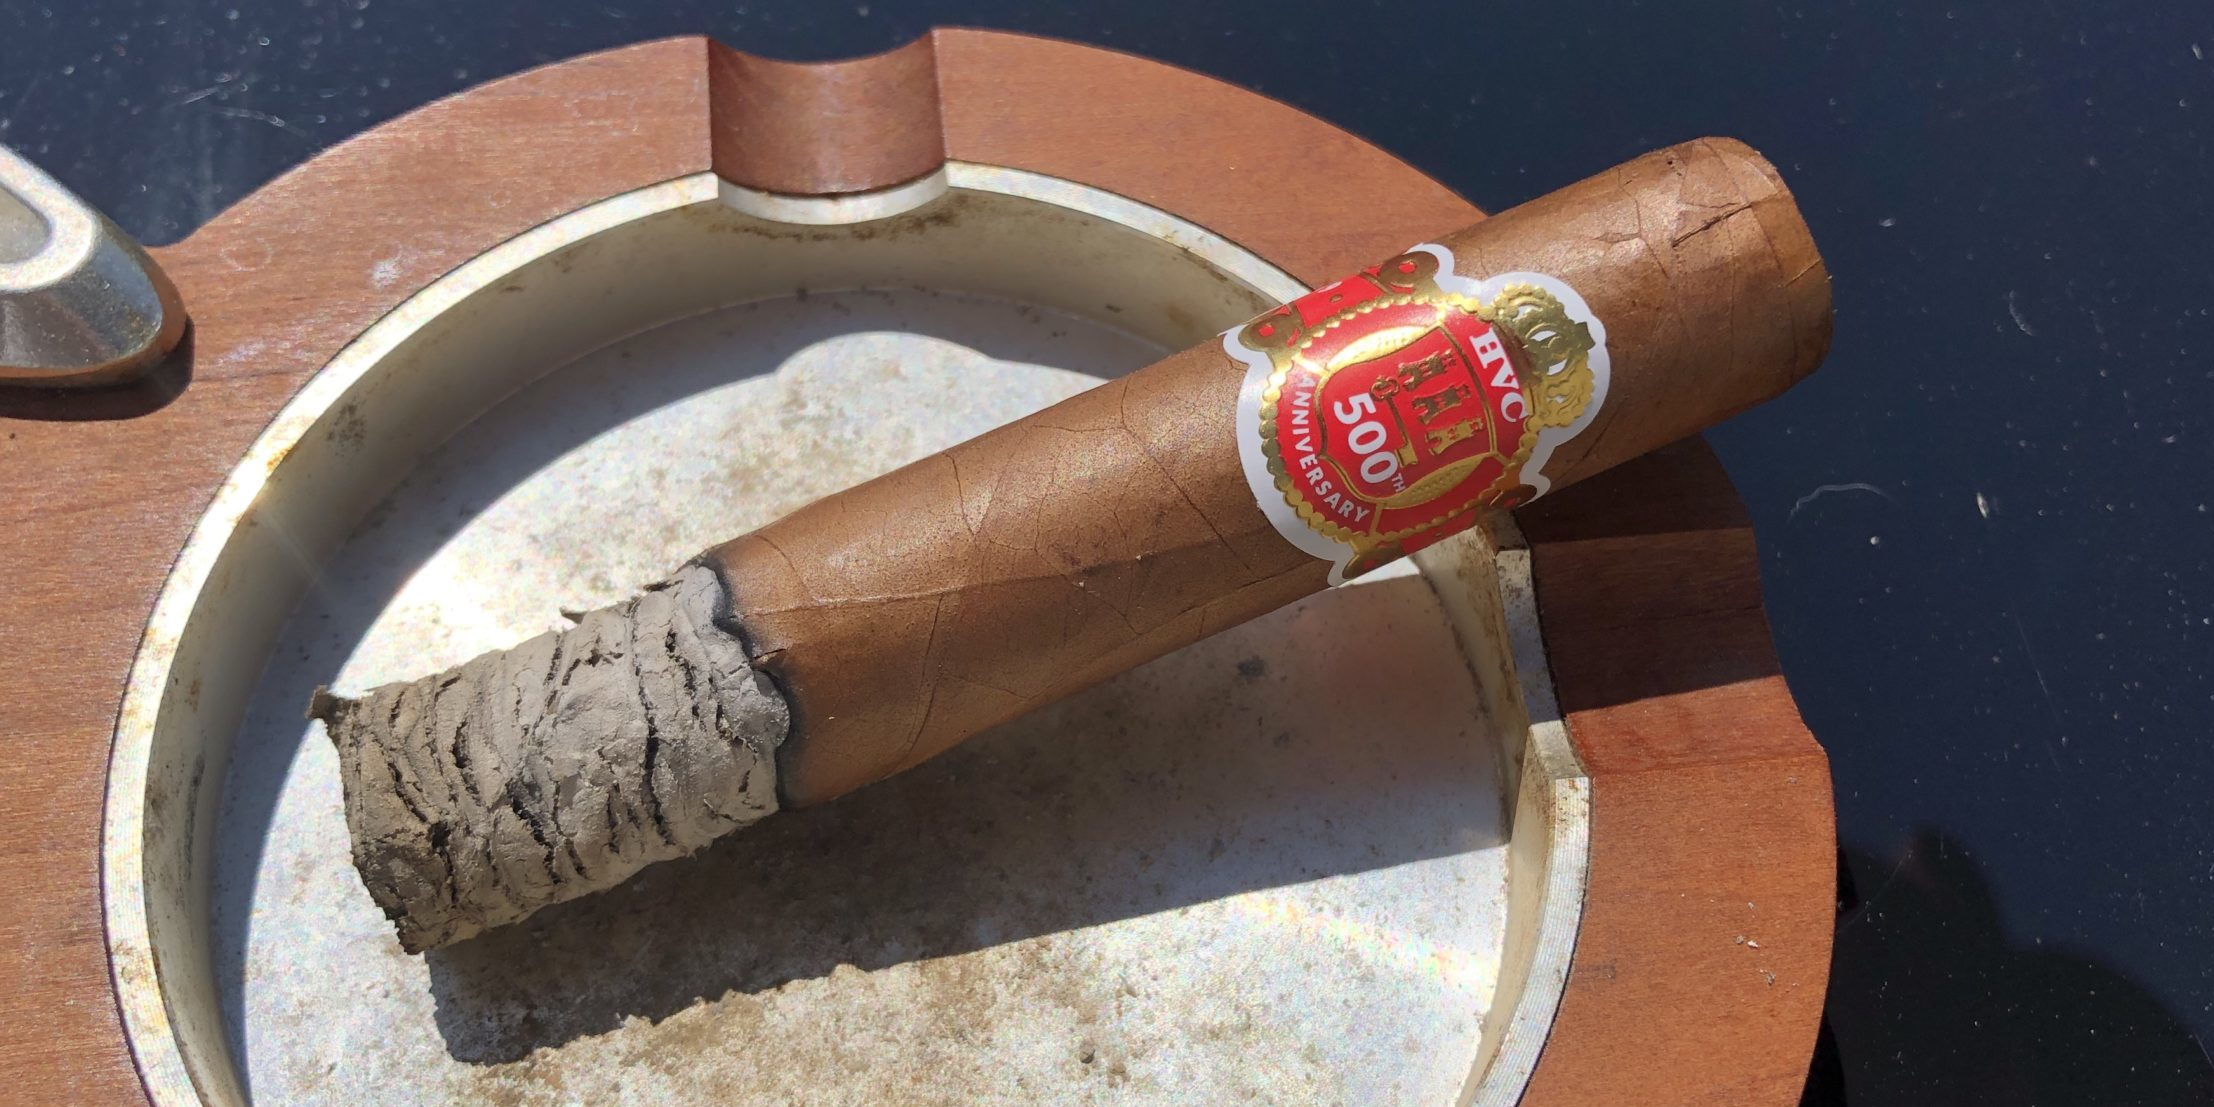 You are currently viewing HVC 500 Years Anniversary LE Short Robusto Cigar Review